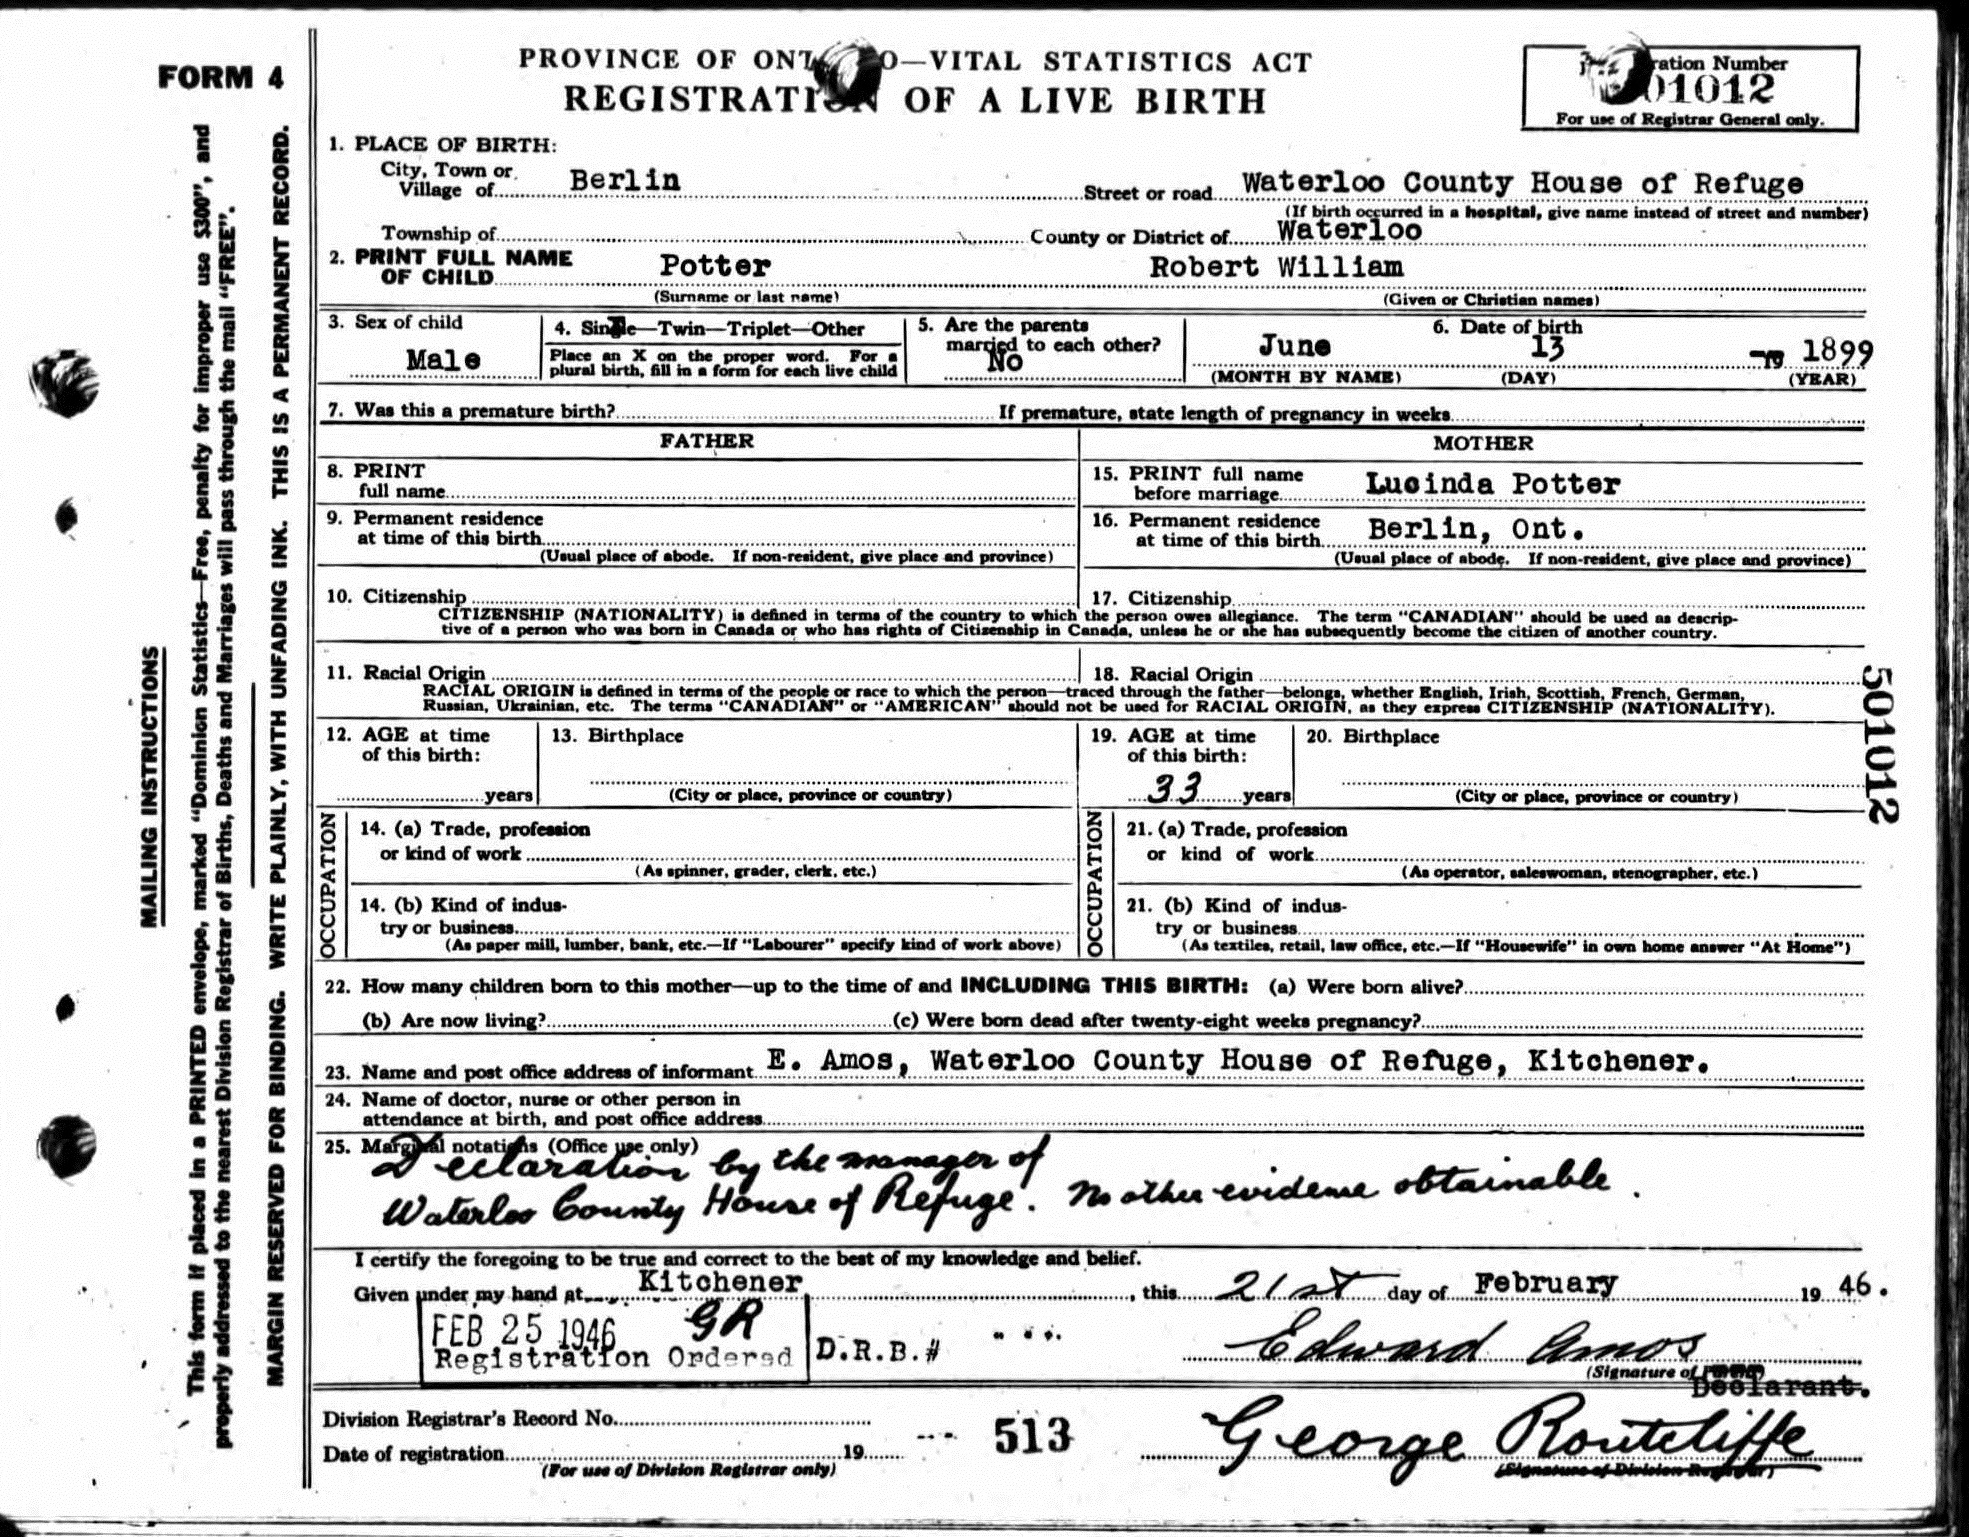 1899 Robert Williams Birth Certificate Waterloo County House Of